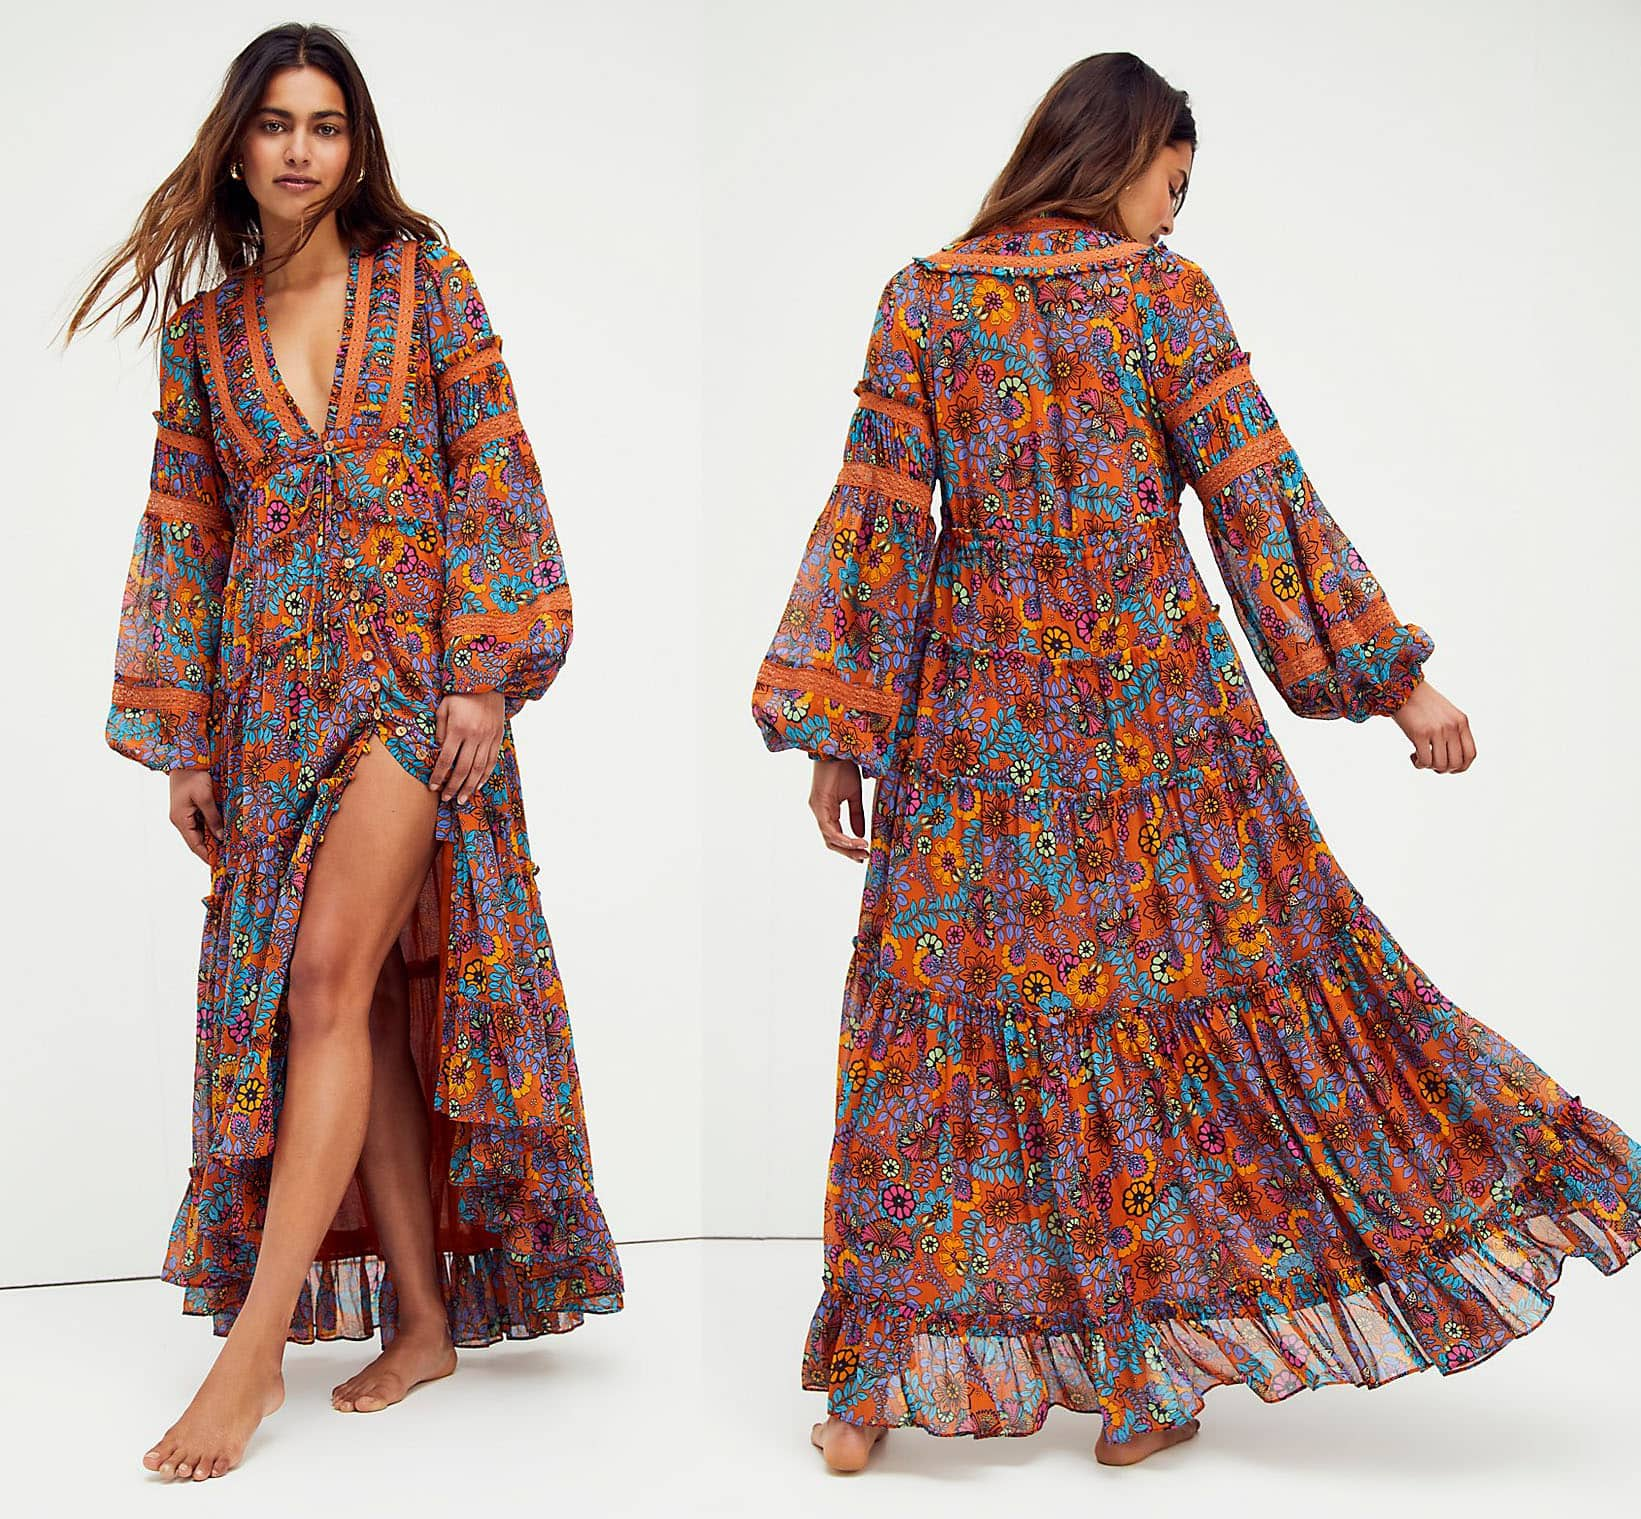 Go the boho route in this flowy floral tiered midi dress from Free People